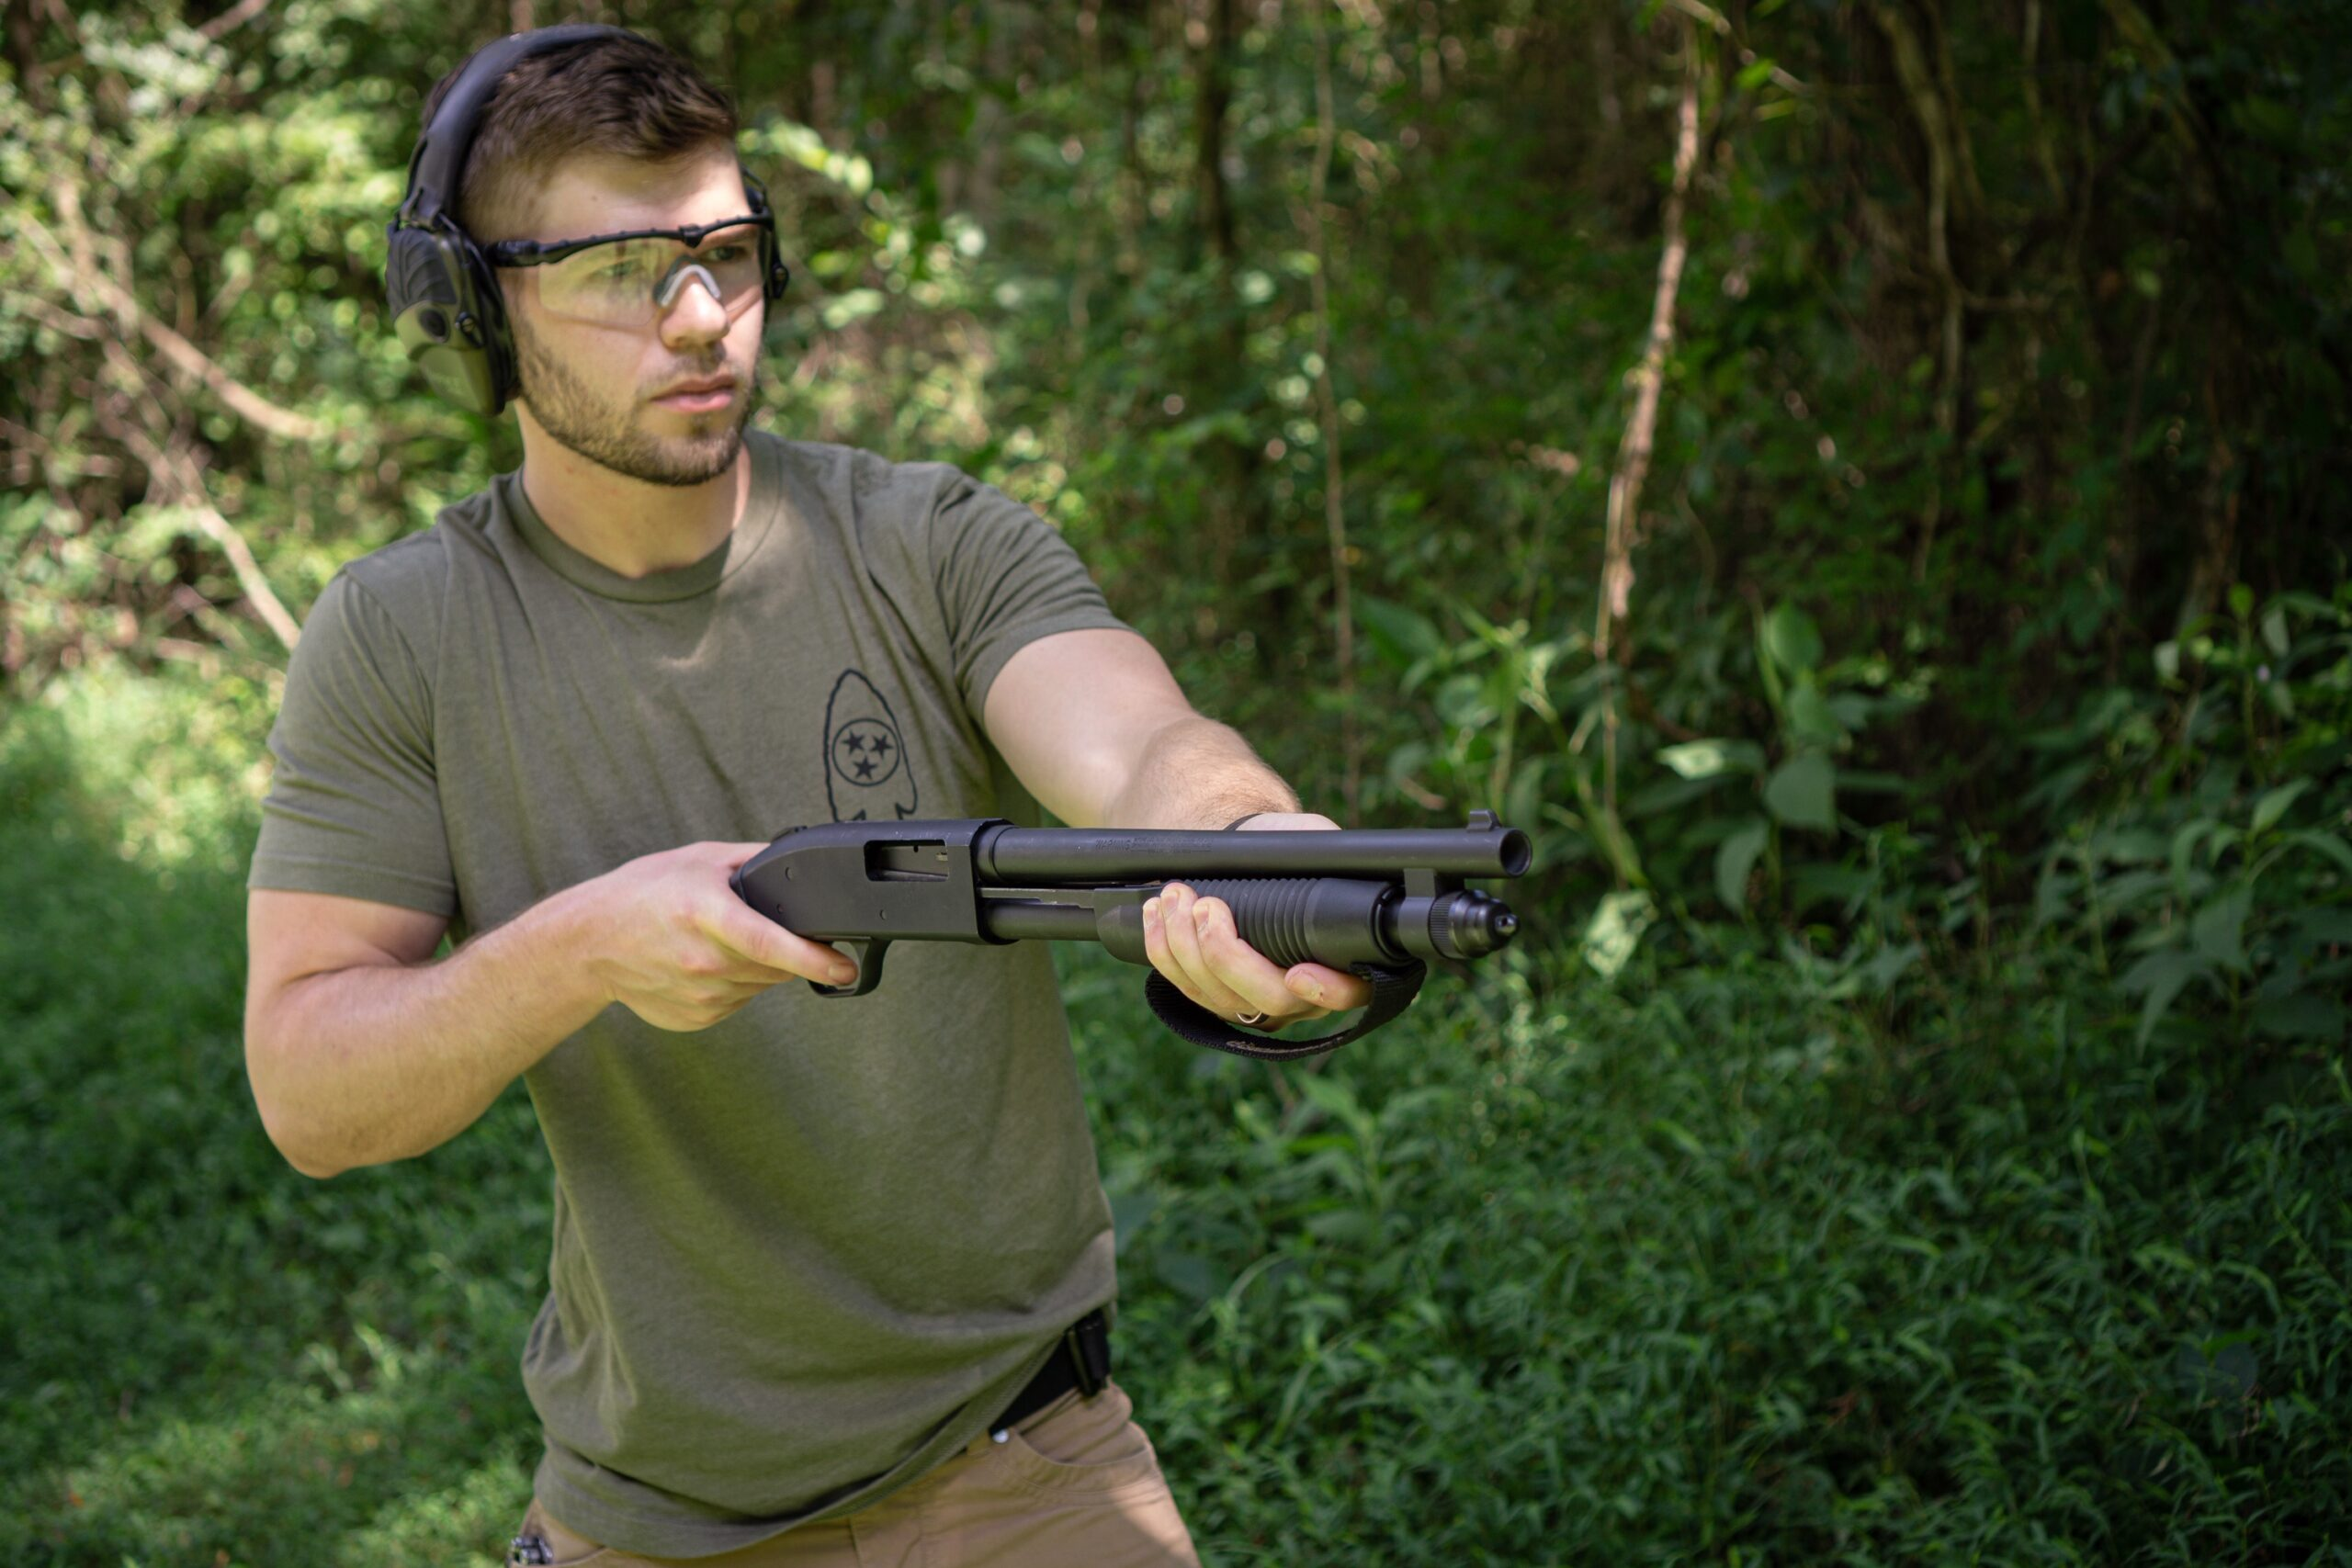 Nolan Firing The Mossberg Shockwave at the range